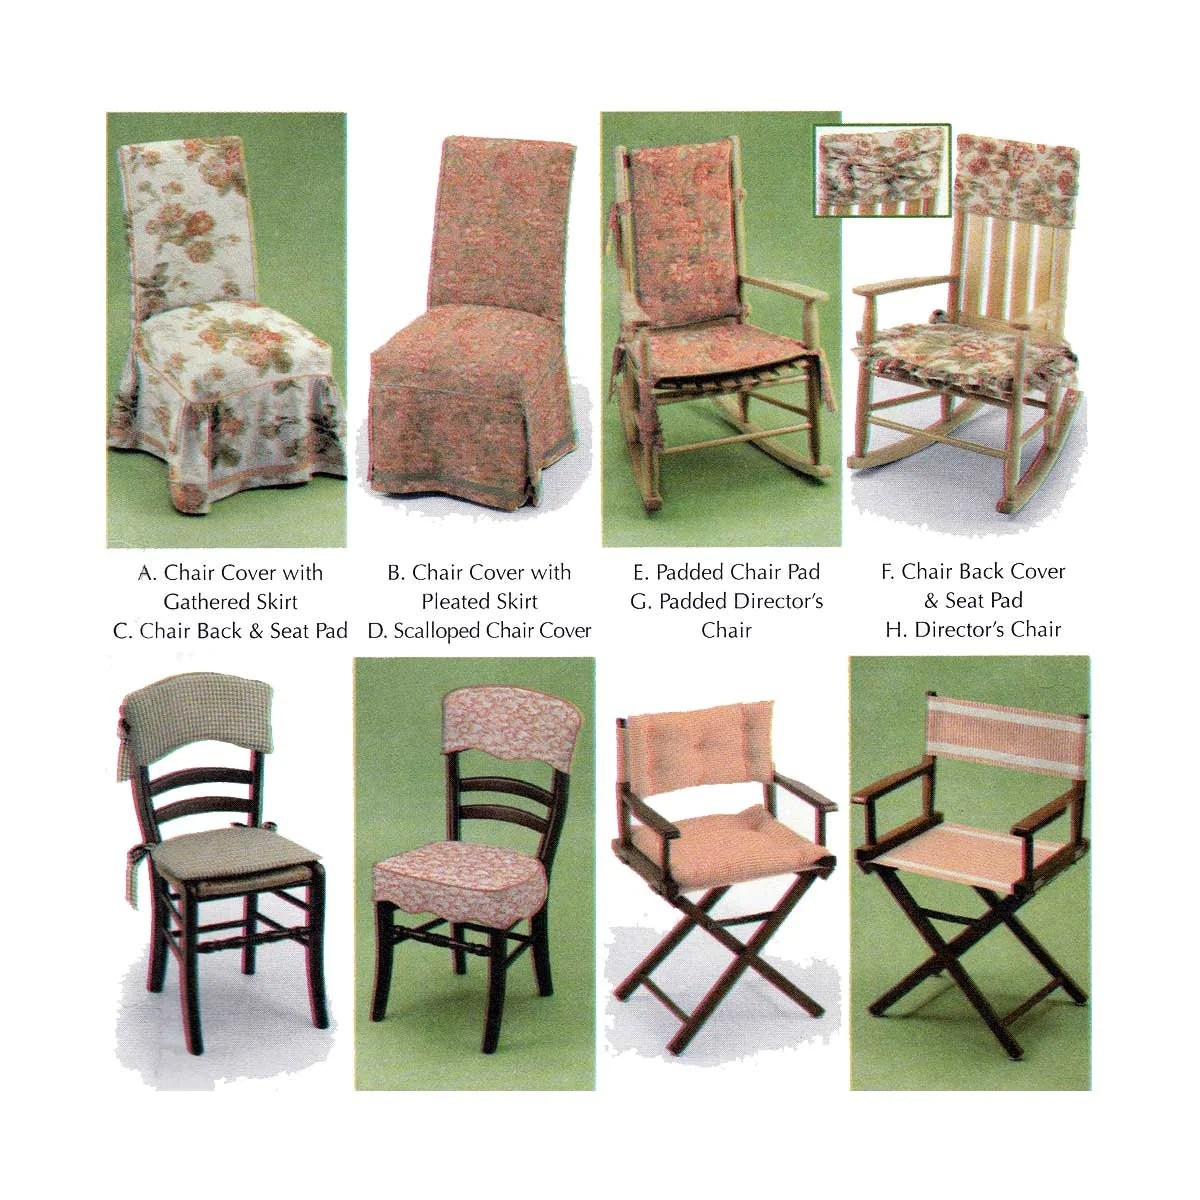 sewing patterns for patio chair cushions covers wedding restaurant pads home decor pattern by donna